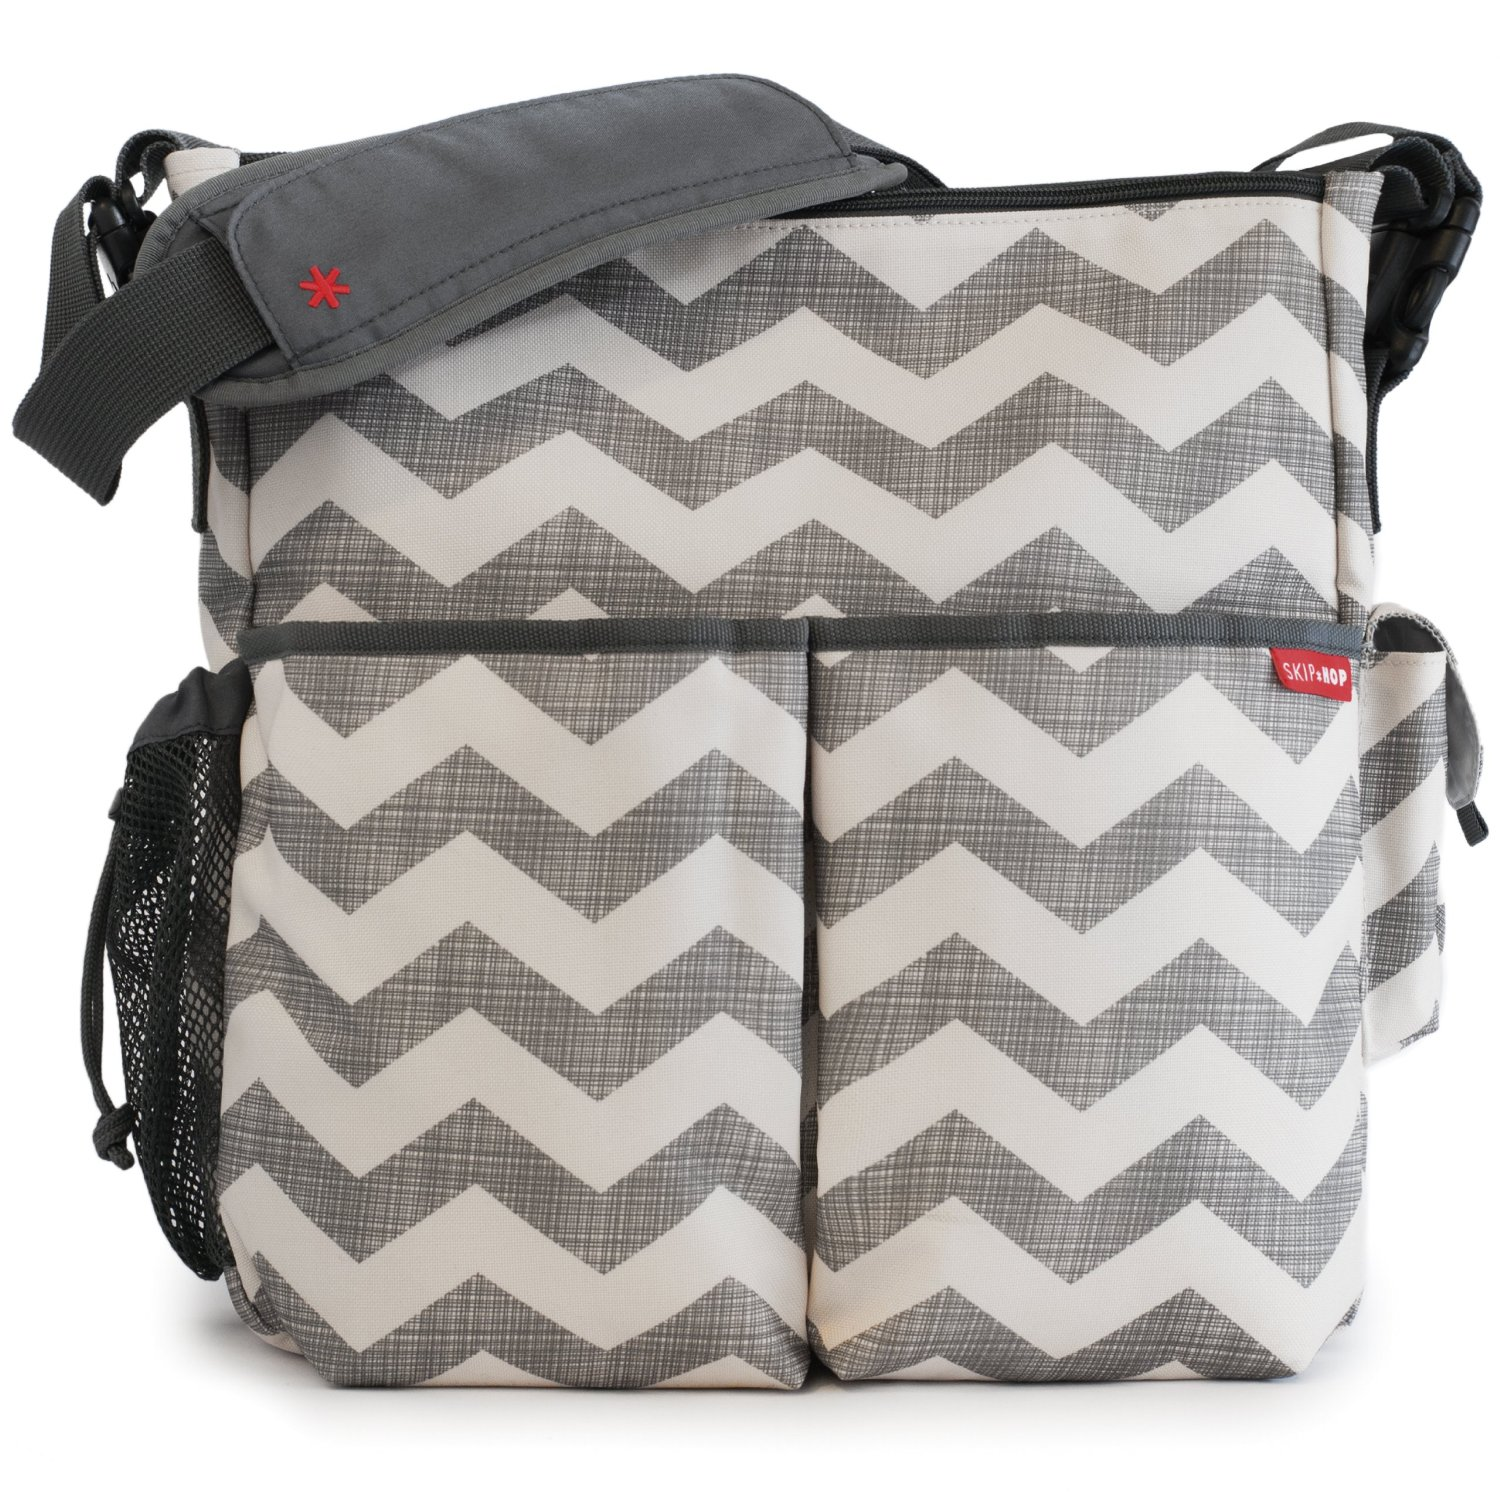 Headline for Best Chevron Diaper Bag for Boy or Girl | Grey, Pink, Blue, Navy, Purple, Black and White